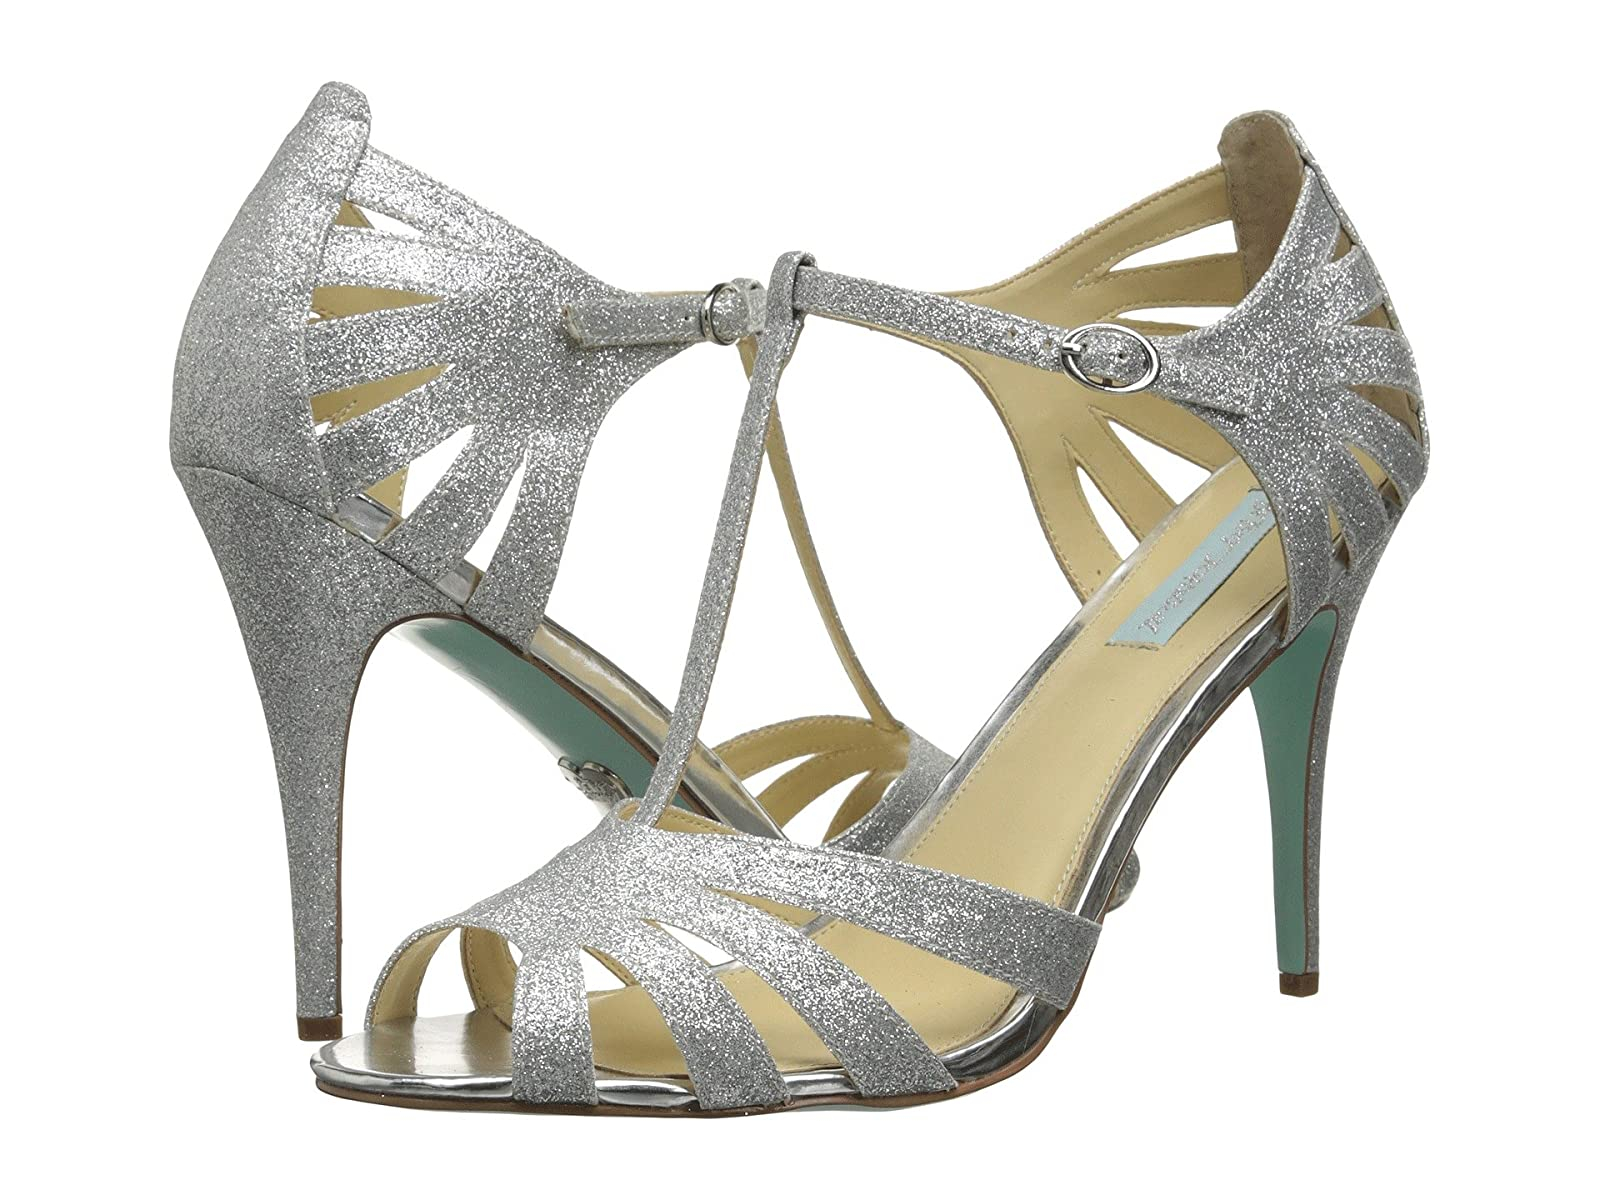 Blue by Betsey Johnson TeeAtmospheric grades have affordable shoes